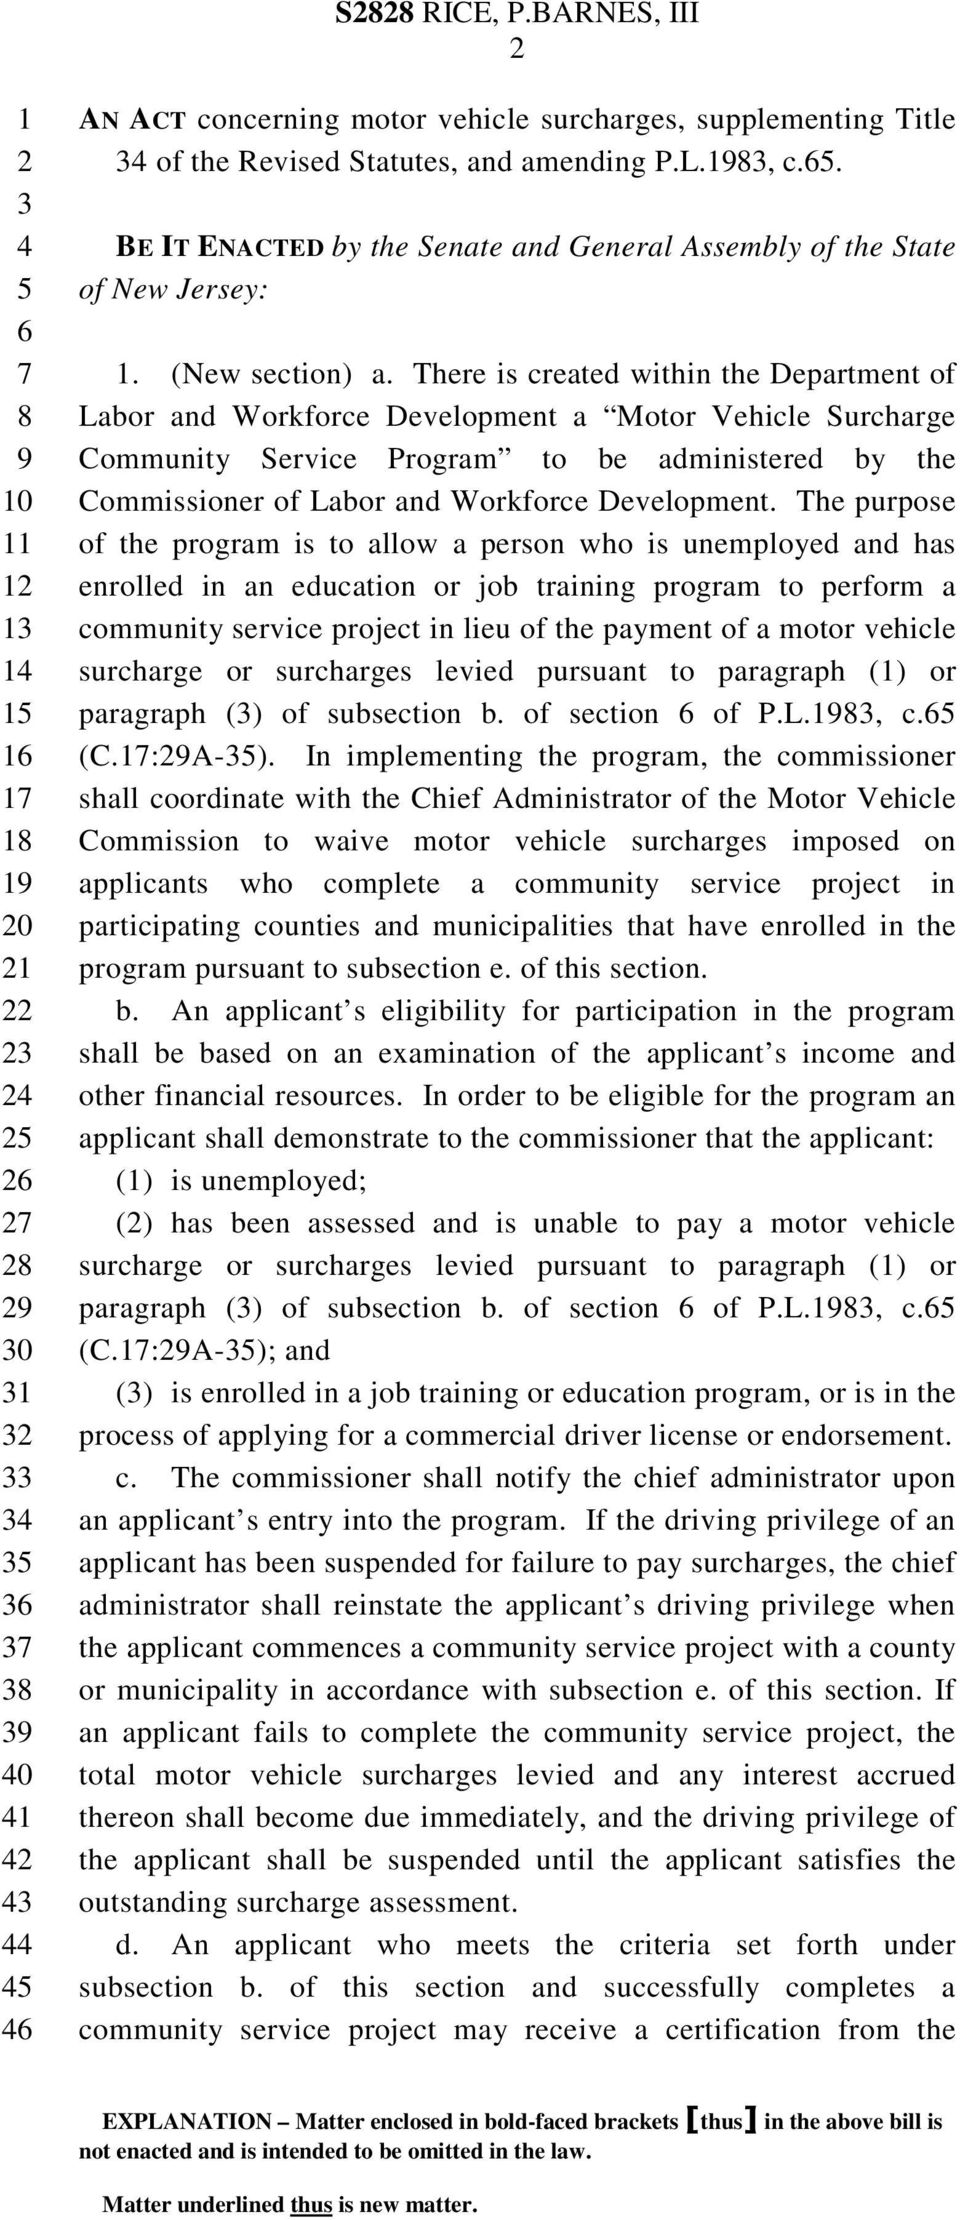 There is created within the Department of Labor and Workforce Development a Motor Vehicle Surcharge Community Service Program to be administered by the Commissioner of Labor and Workforce Development.